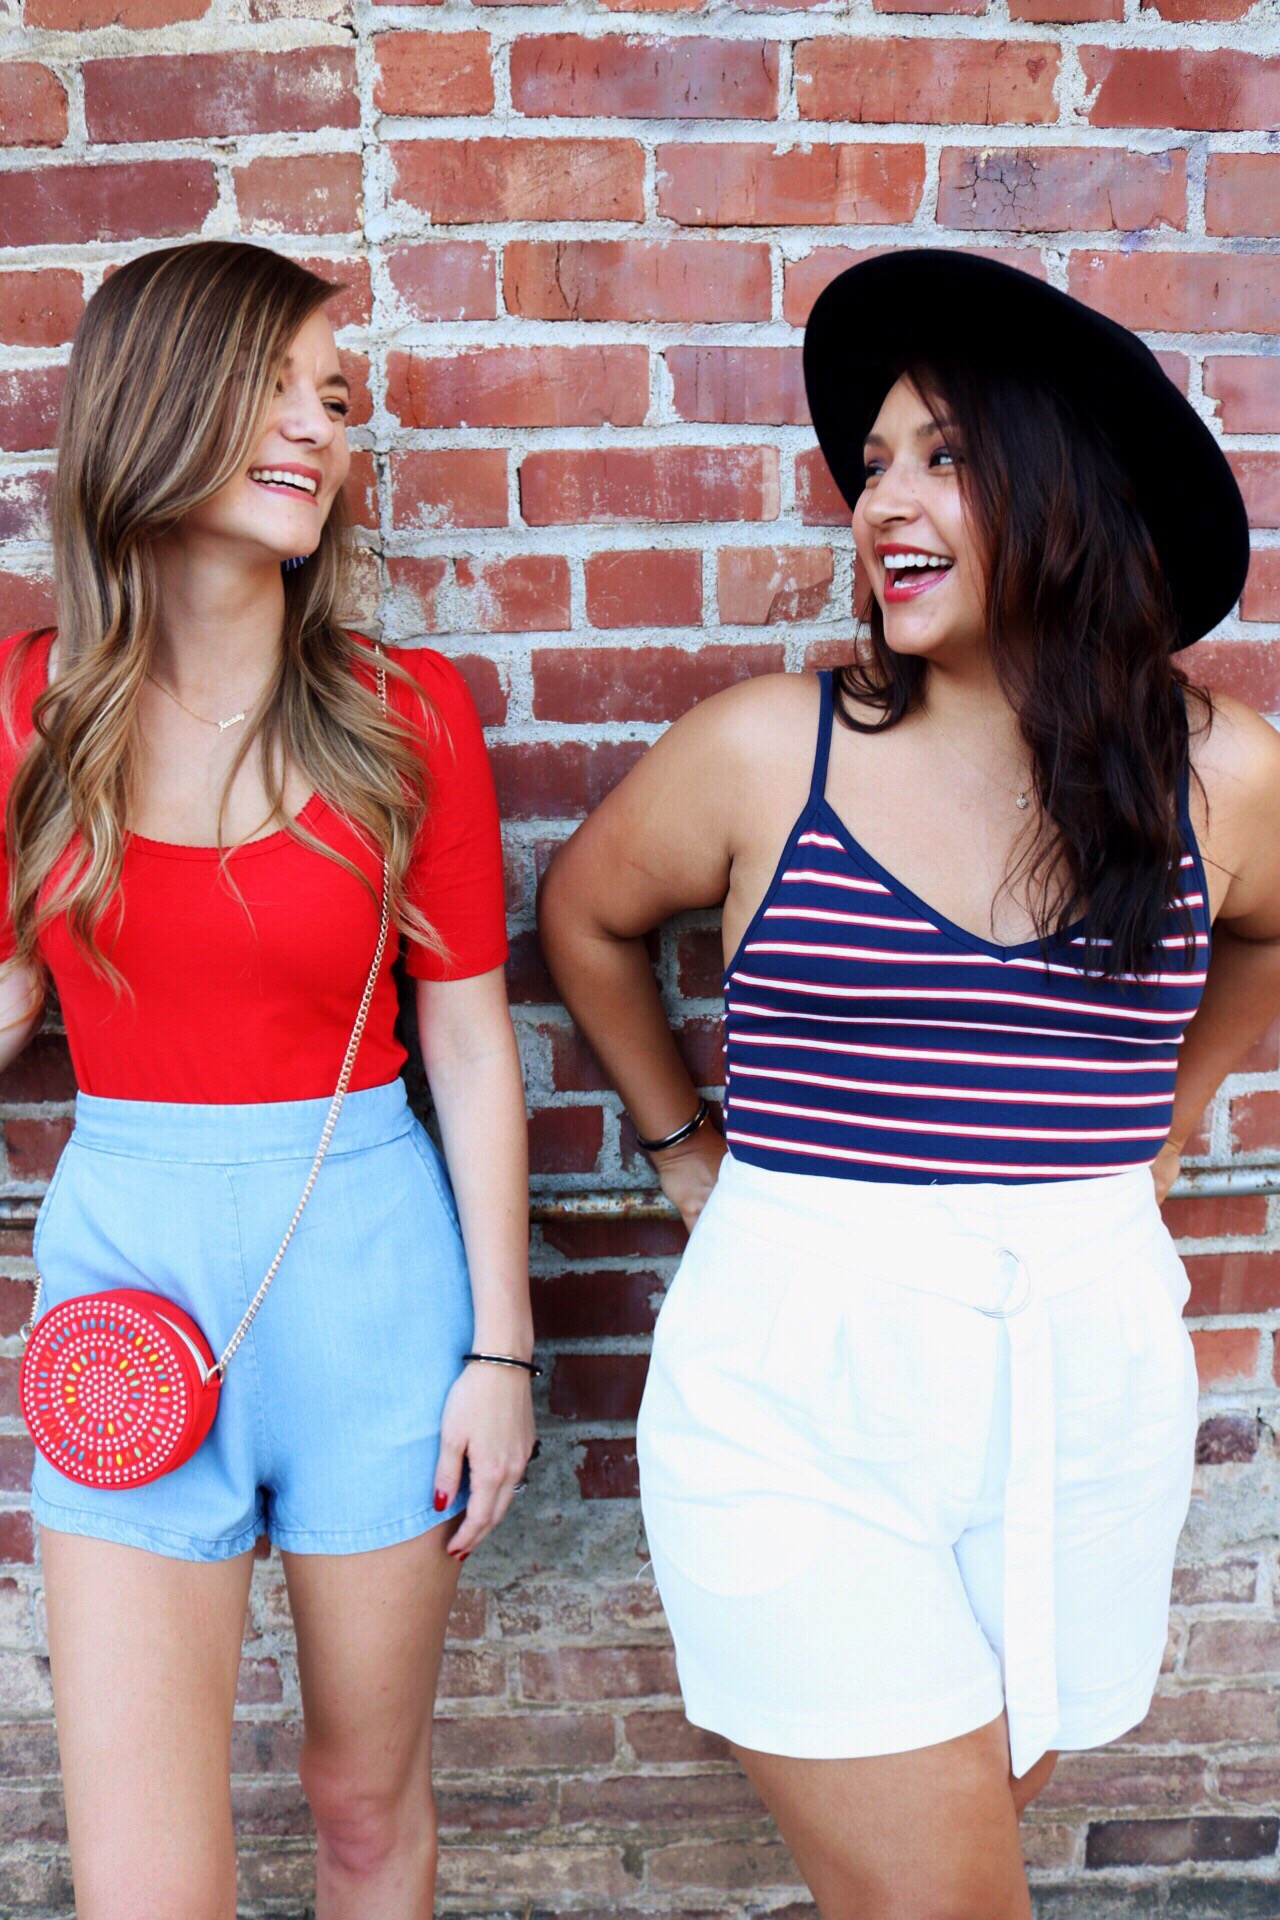 Festive fourth of July outfits!